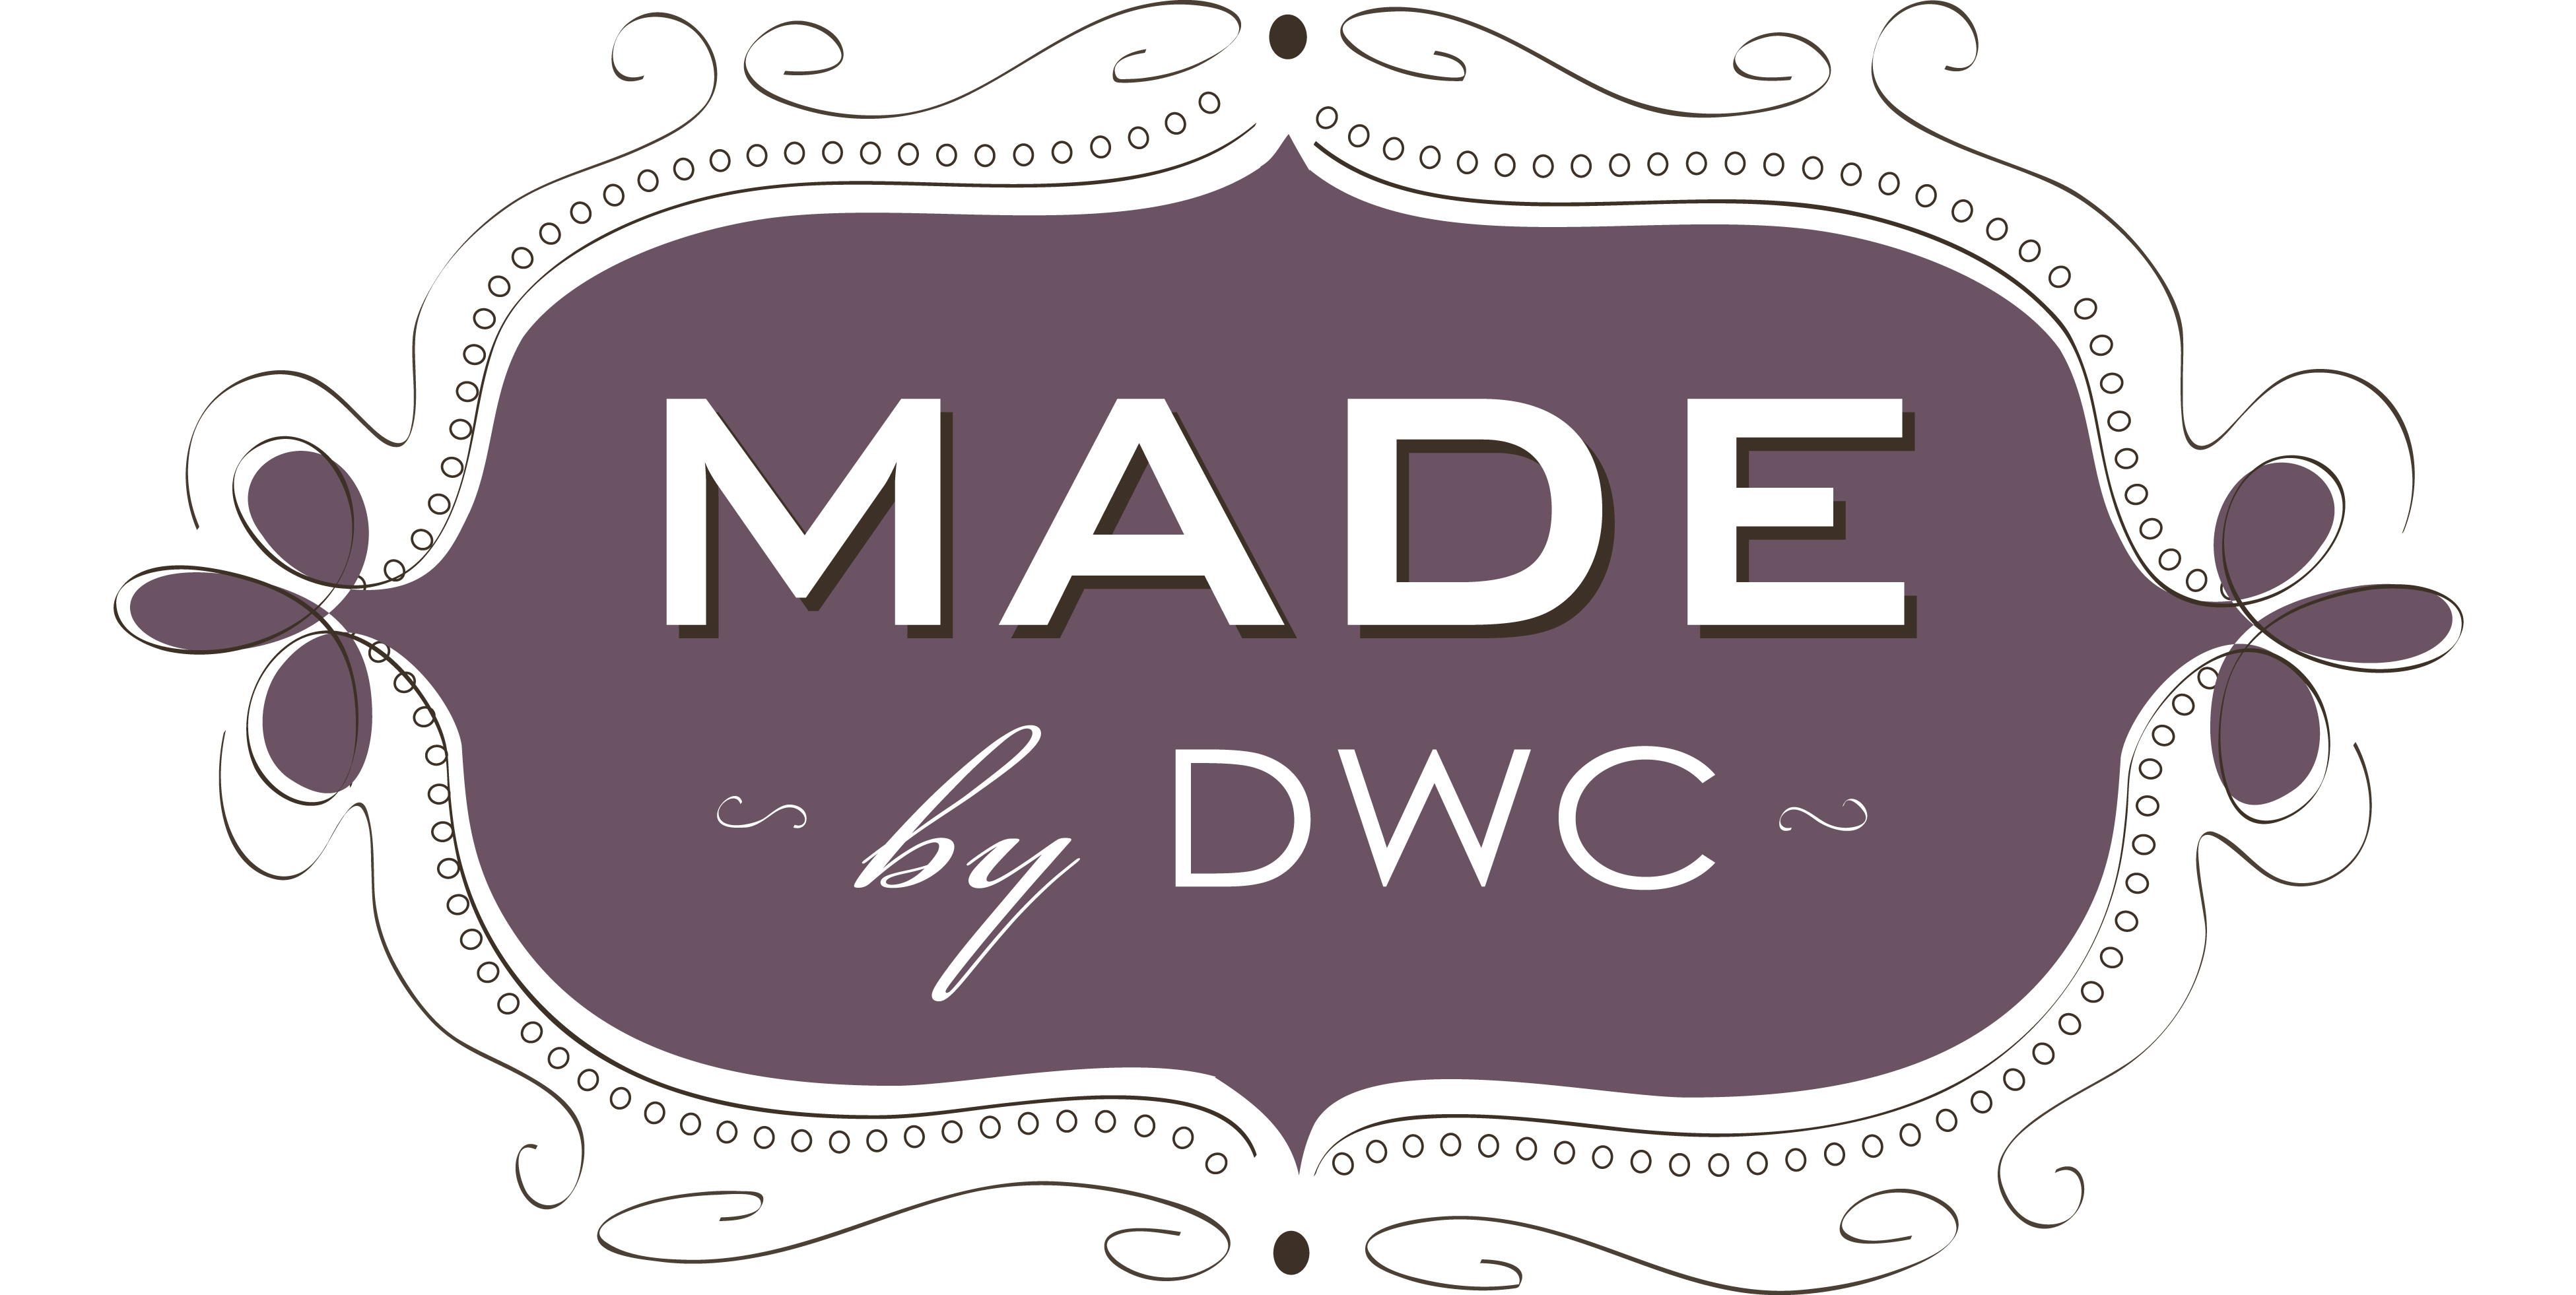 Shop at MADE by DWC!